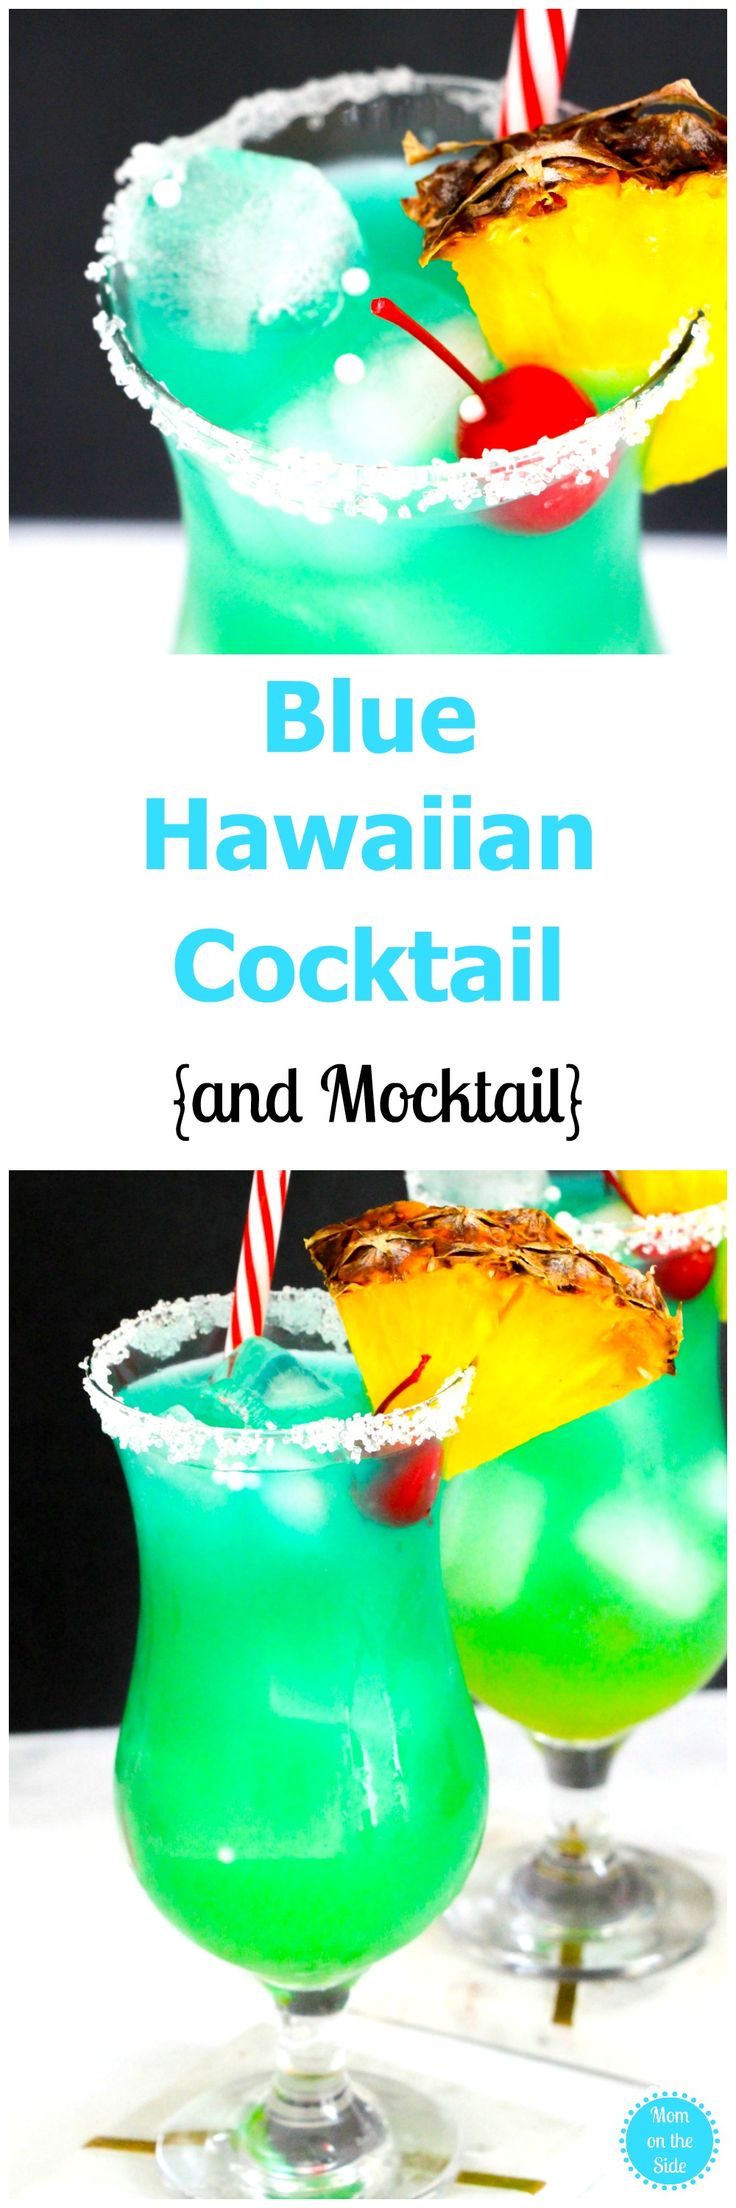 If you want cocktail recipes that make you feel like you are on the beach, this Blue Hawaiian Cocktail is it! Plus, I've got a mocktail version as well! #cocktails #cocktailrecipes #mixeddrinks